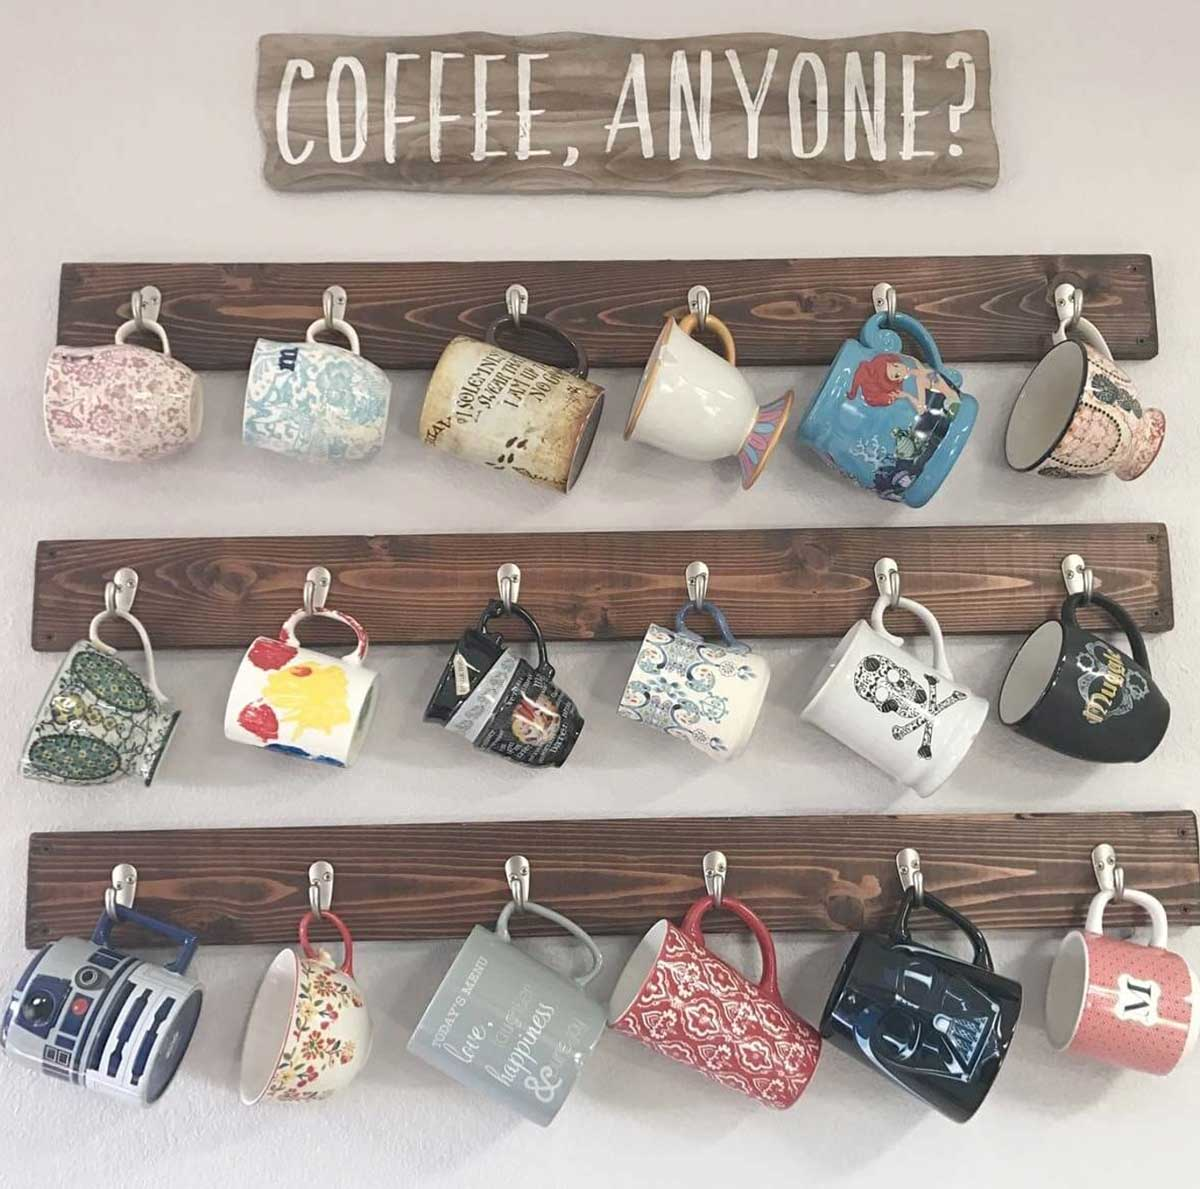 A wall hanging space to hang all of your tea and coffee mugs